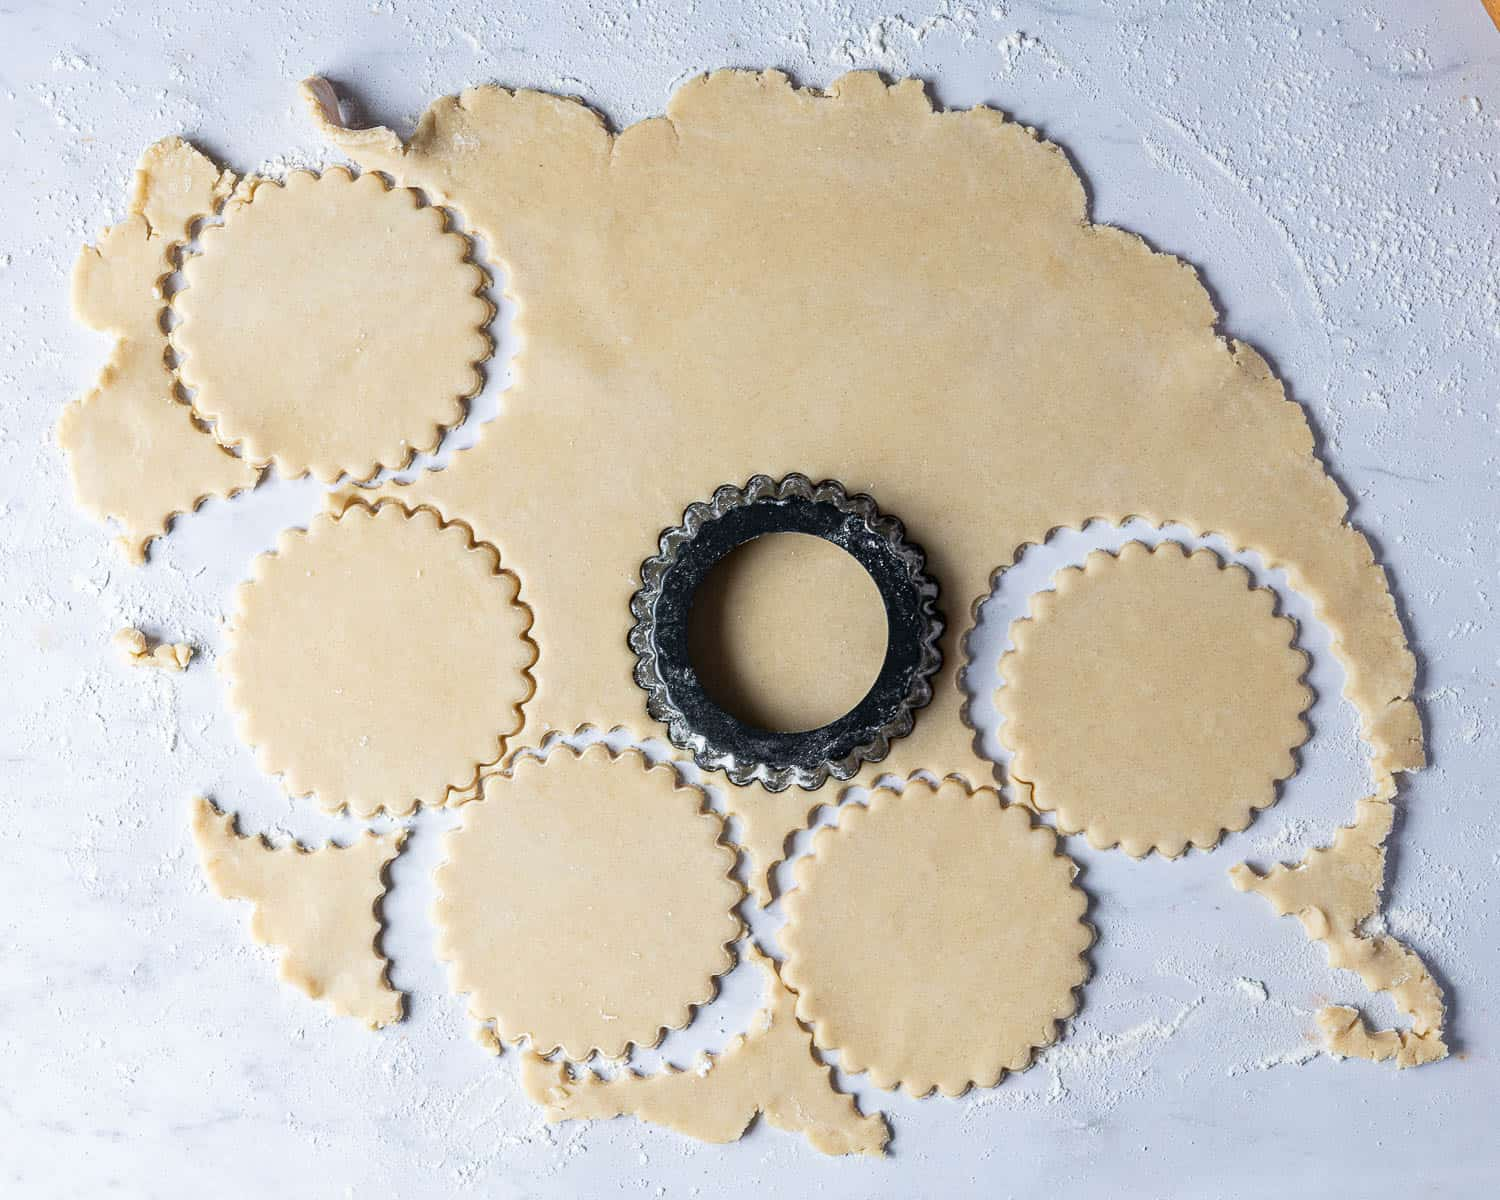 Step 2, the rolled out pastry with rounds being stamped out.